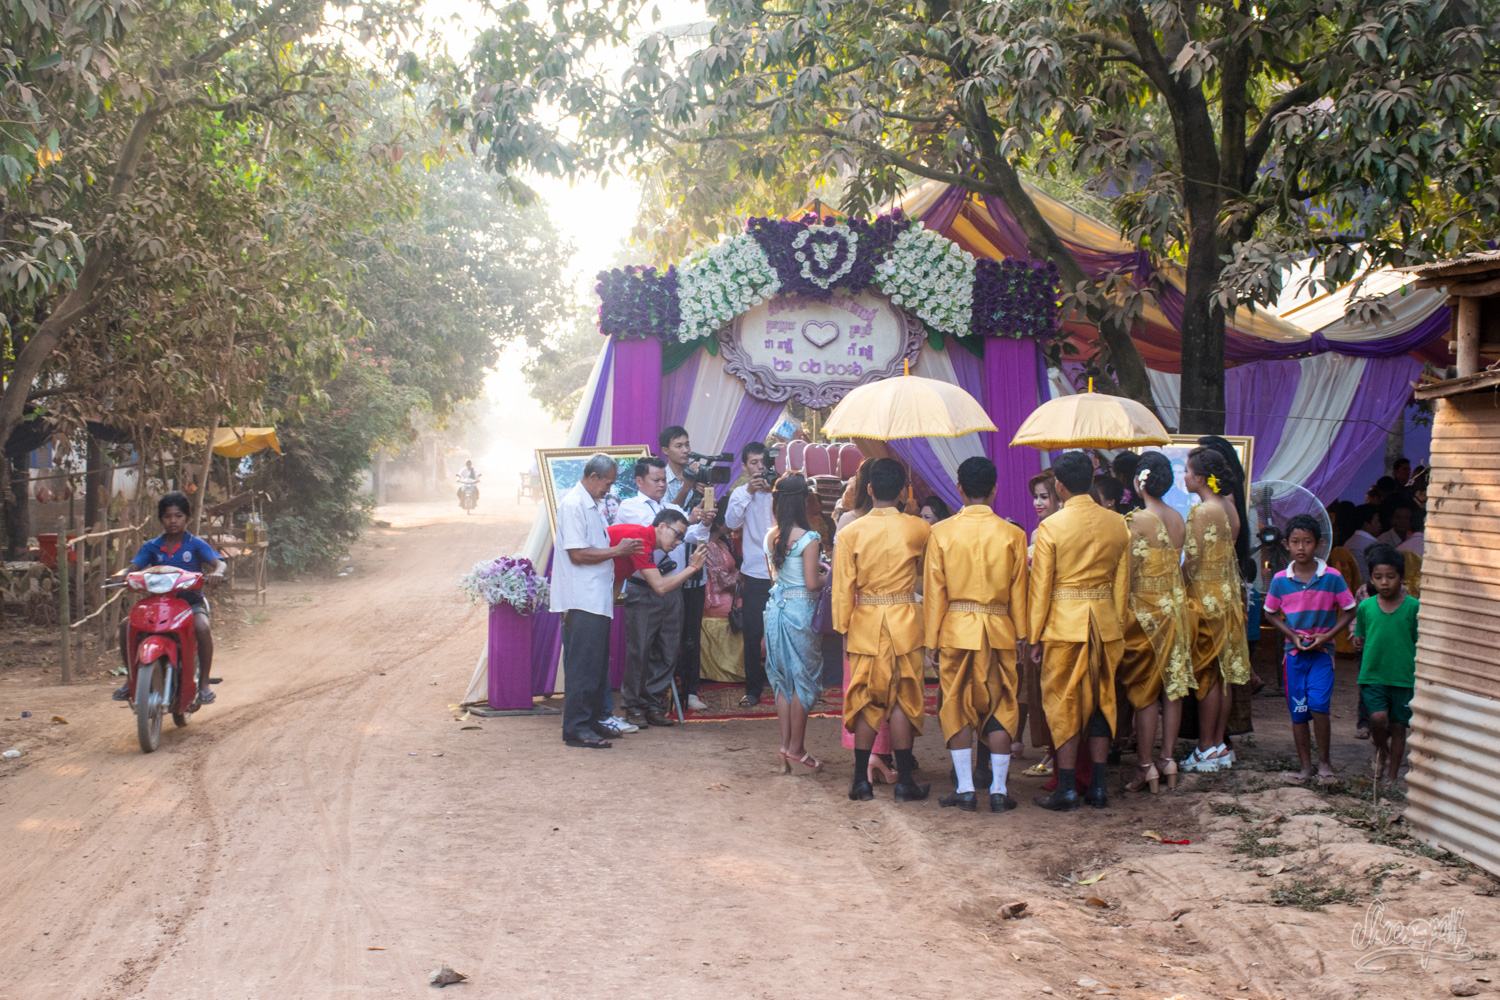 One of the Khmer weddings we've seen on the road in Cambodia